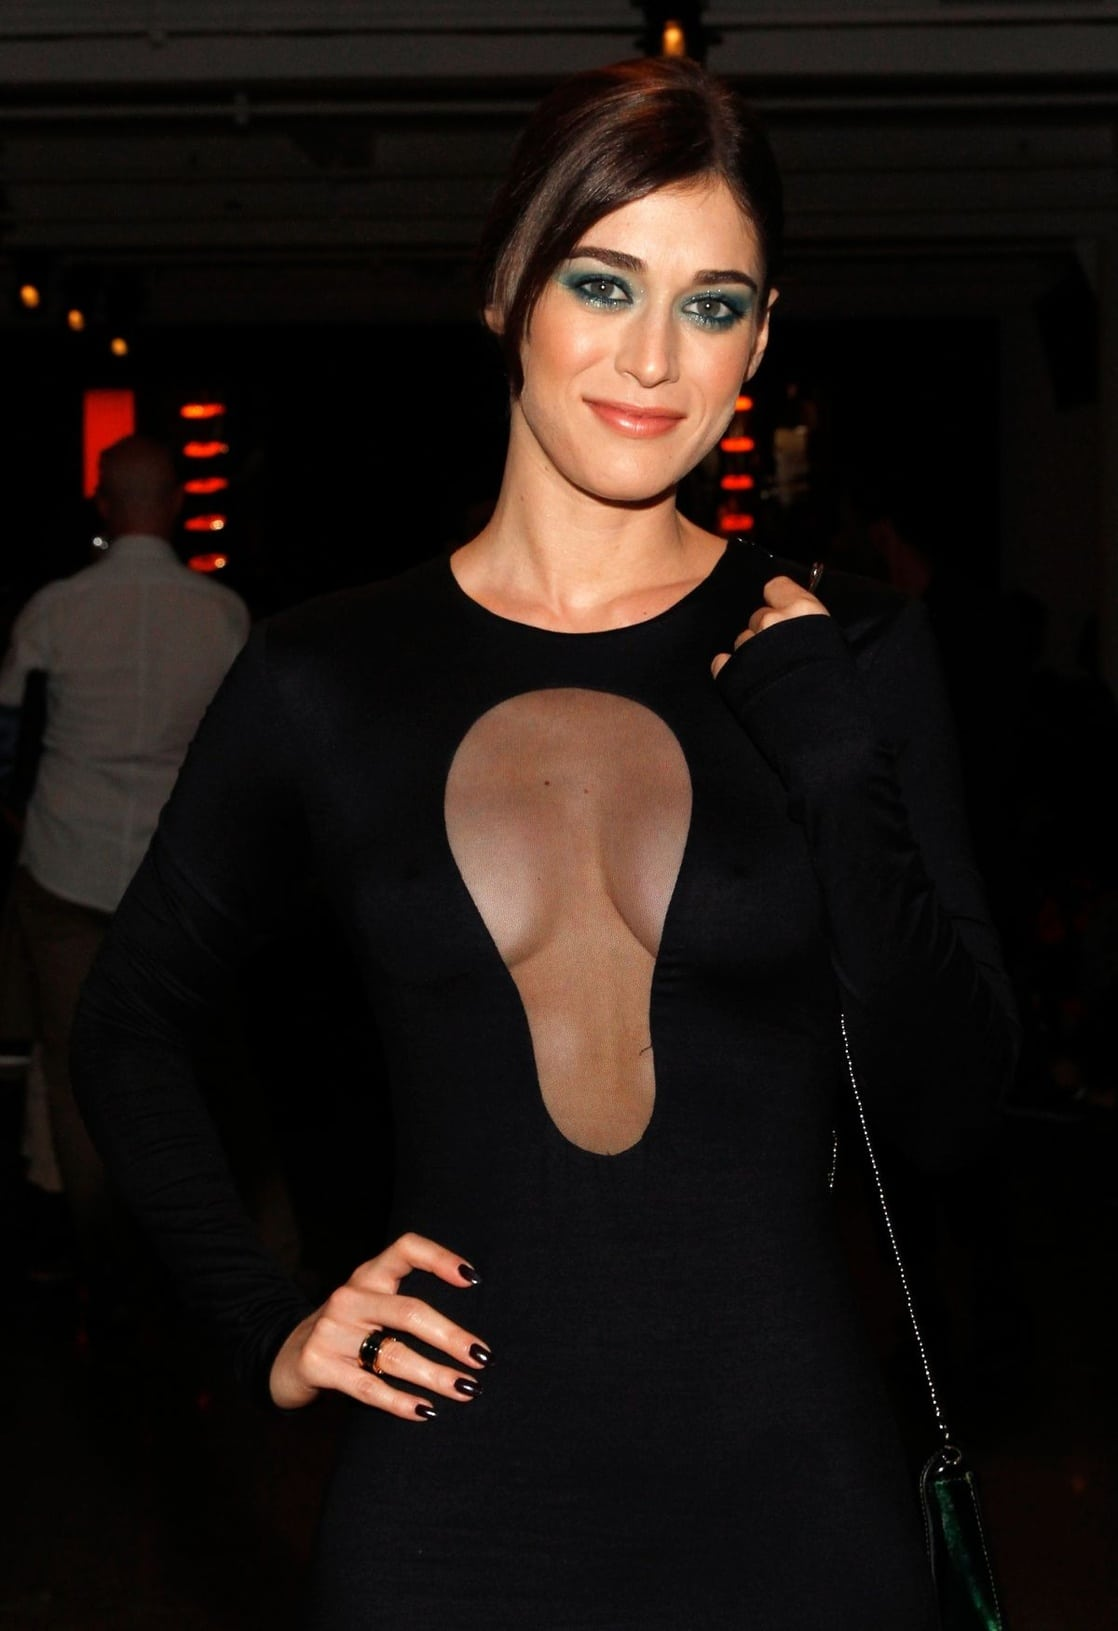 Cleavage Lizzy Caplan nudes (77 photos), Tits, Leaked, Feet, butt 2019